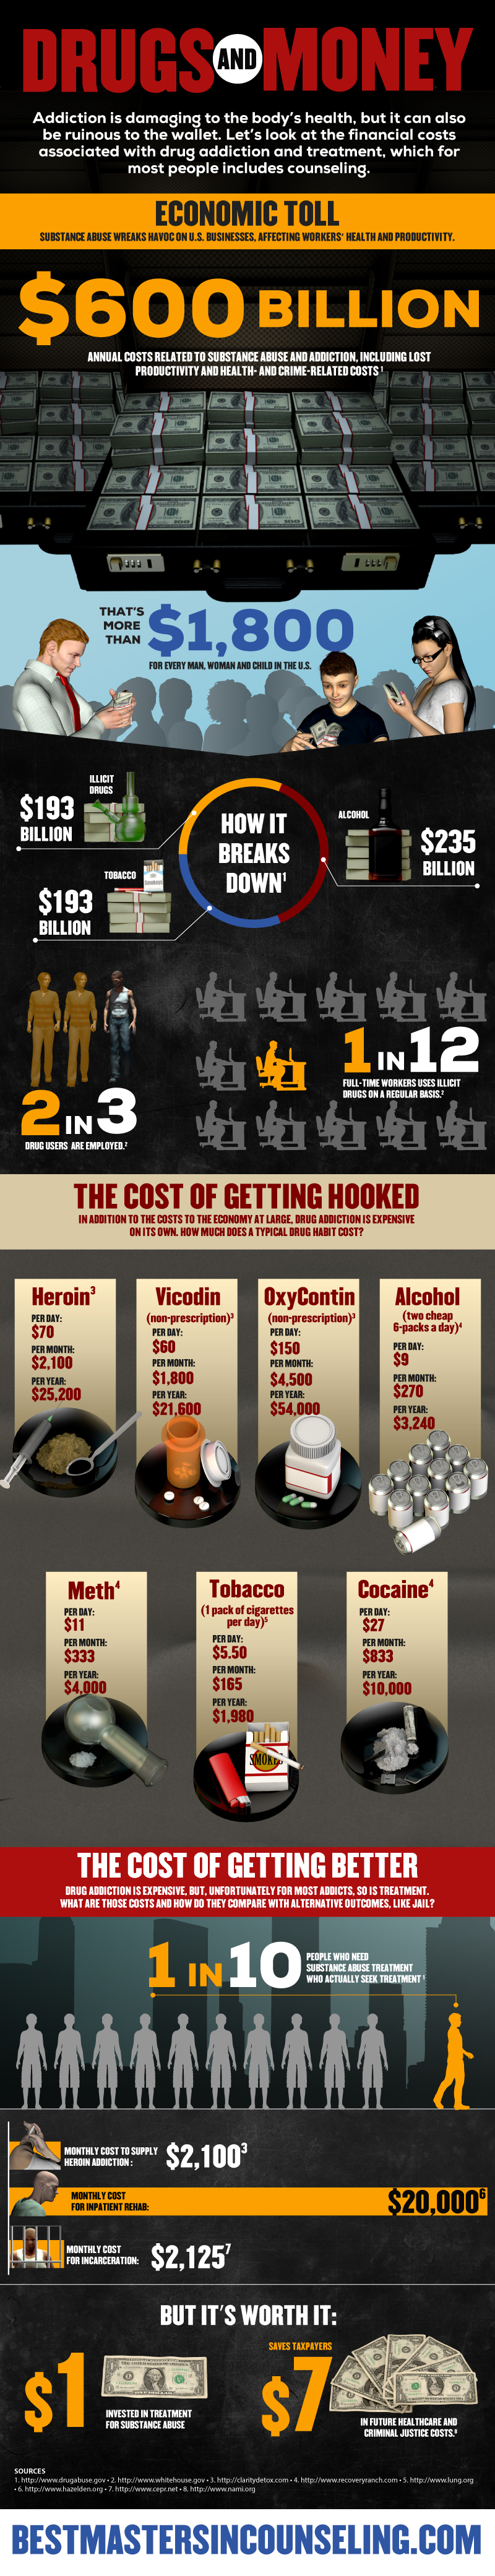 Drugs and Money: The Costs of Addiction